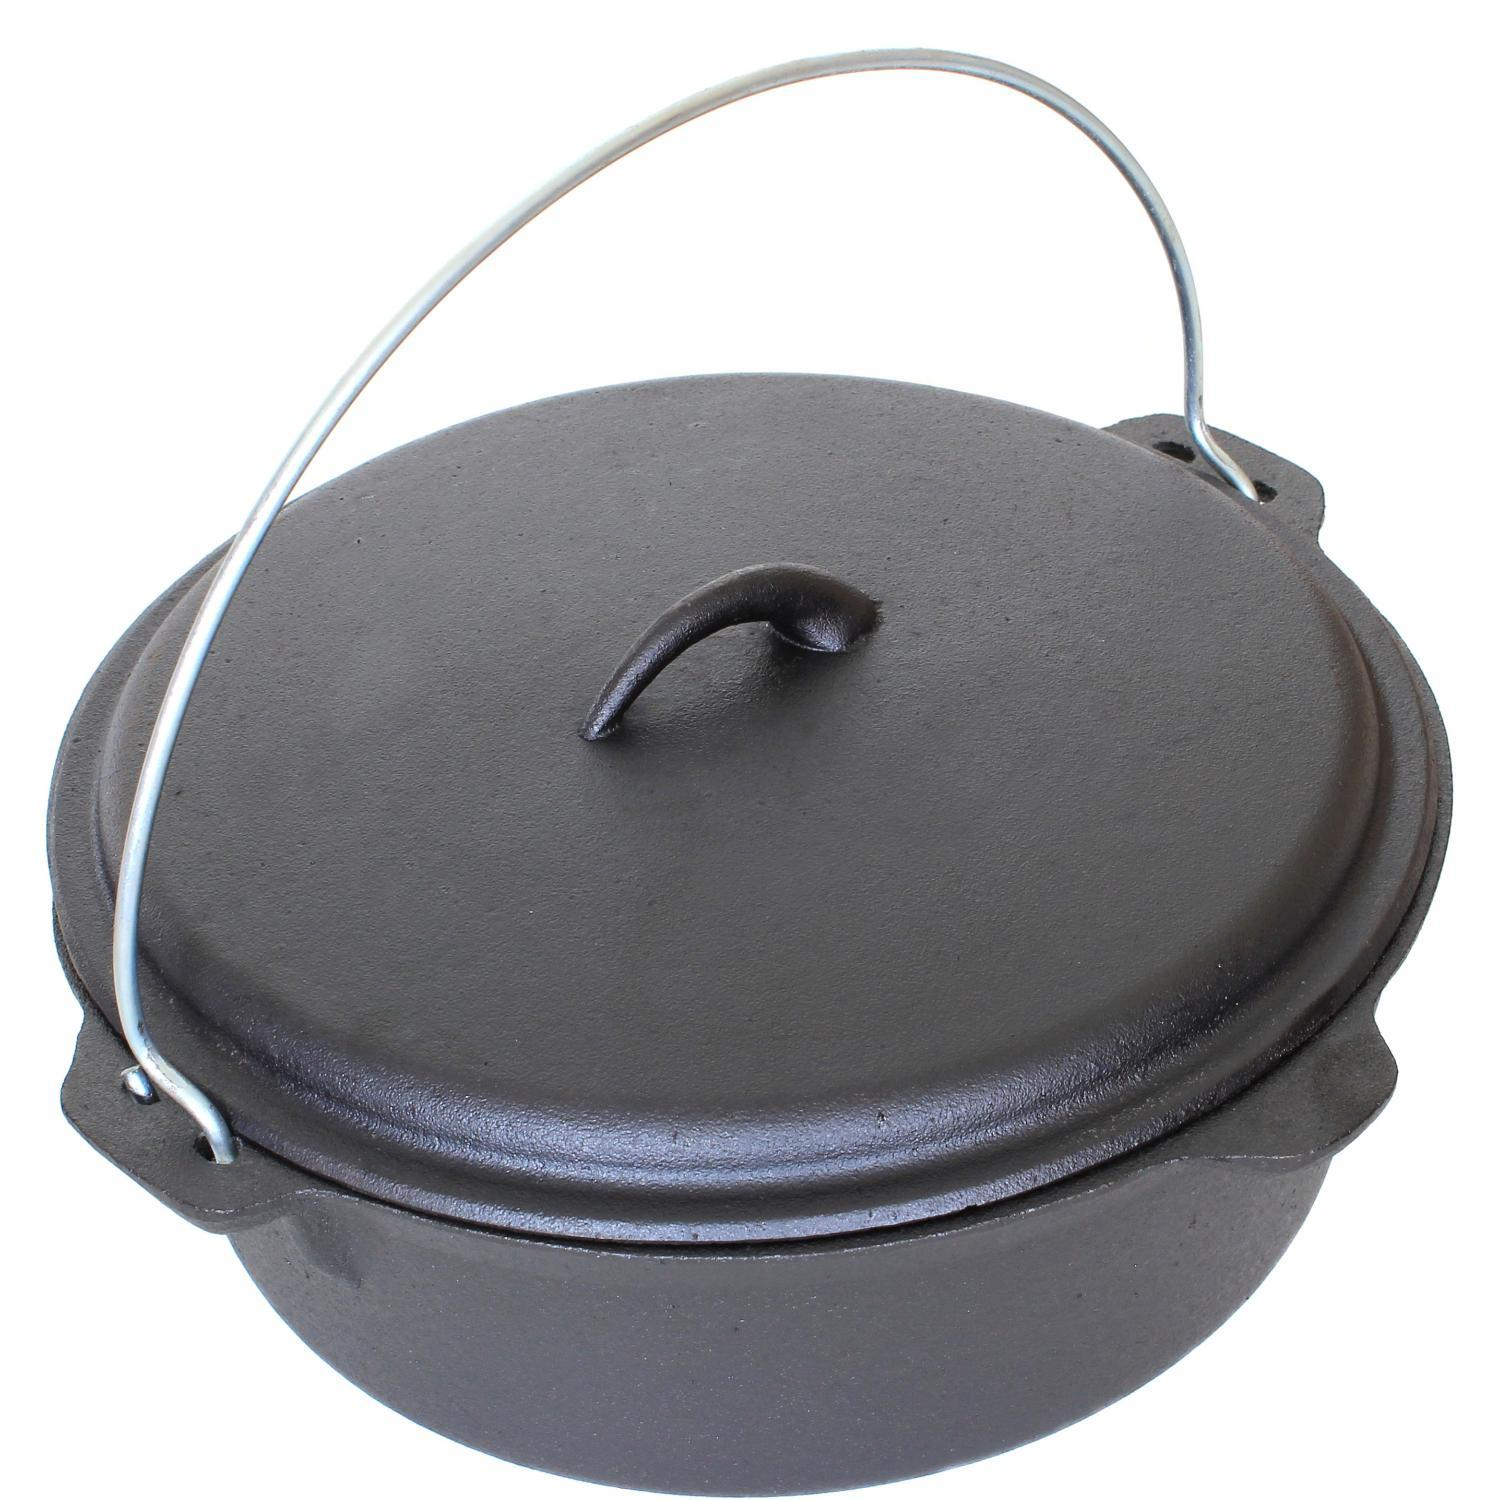 Cajun cookware dutch ovens 6 quart seasoned cast iron dutch oven